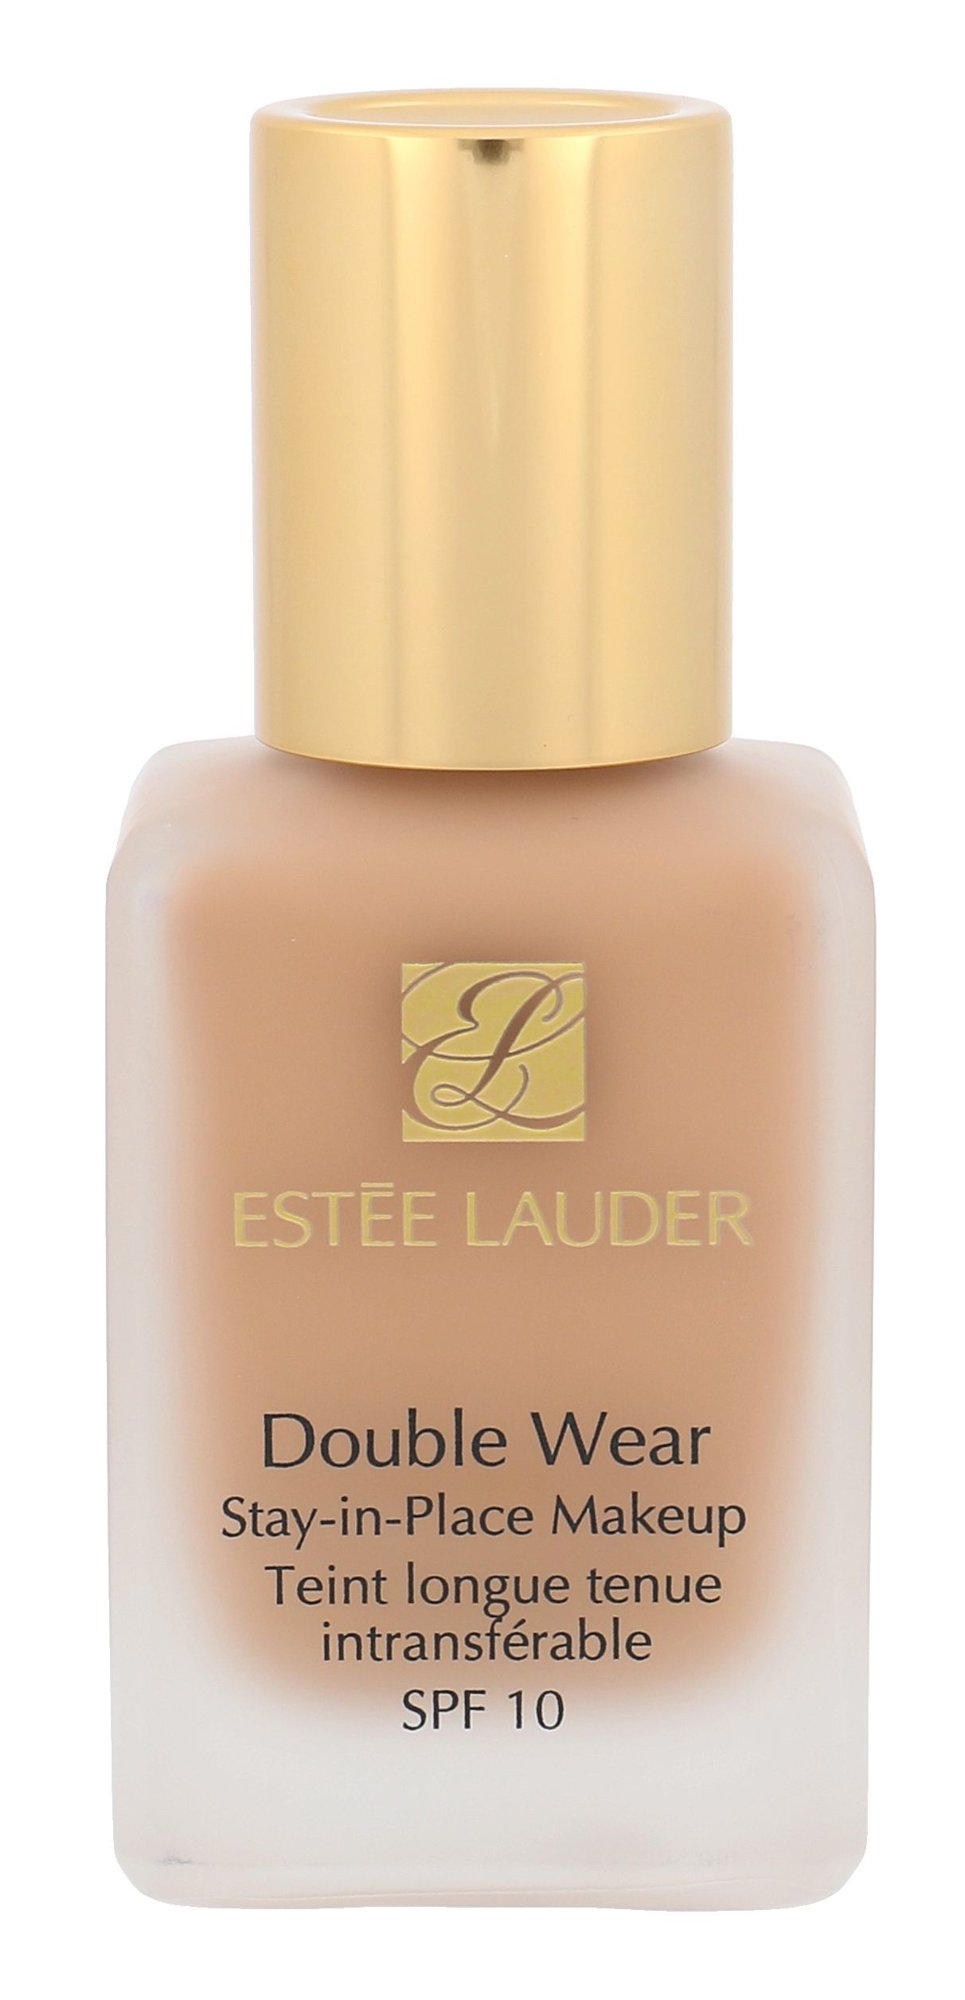 Estée Lauder Double Wear Cosmetic 30ml 2C2 Pale Almond